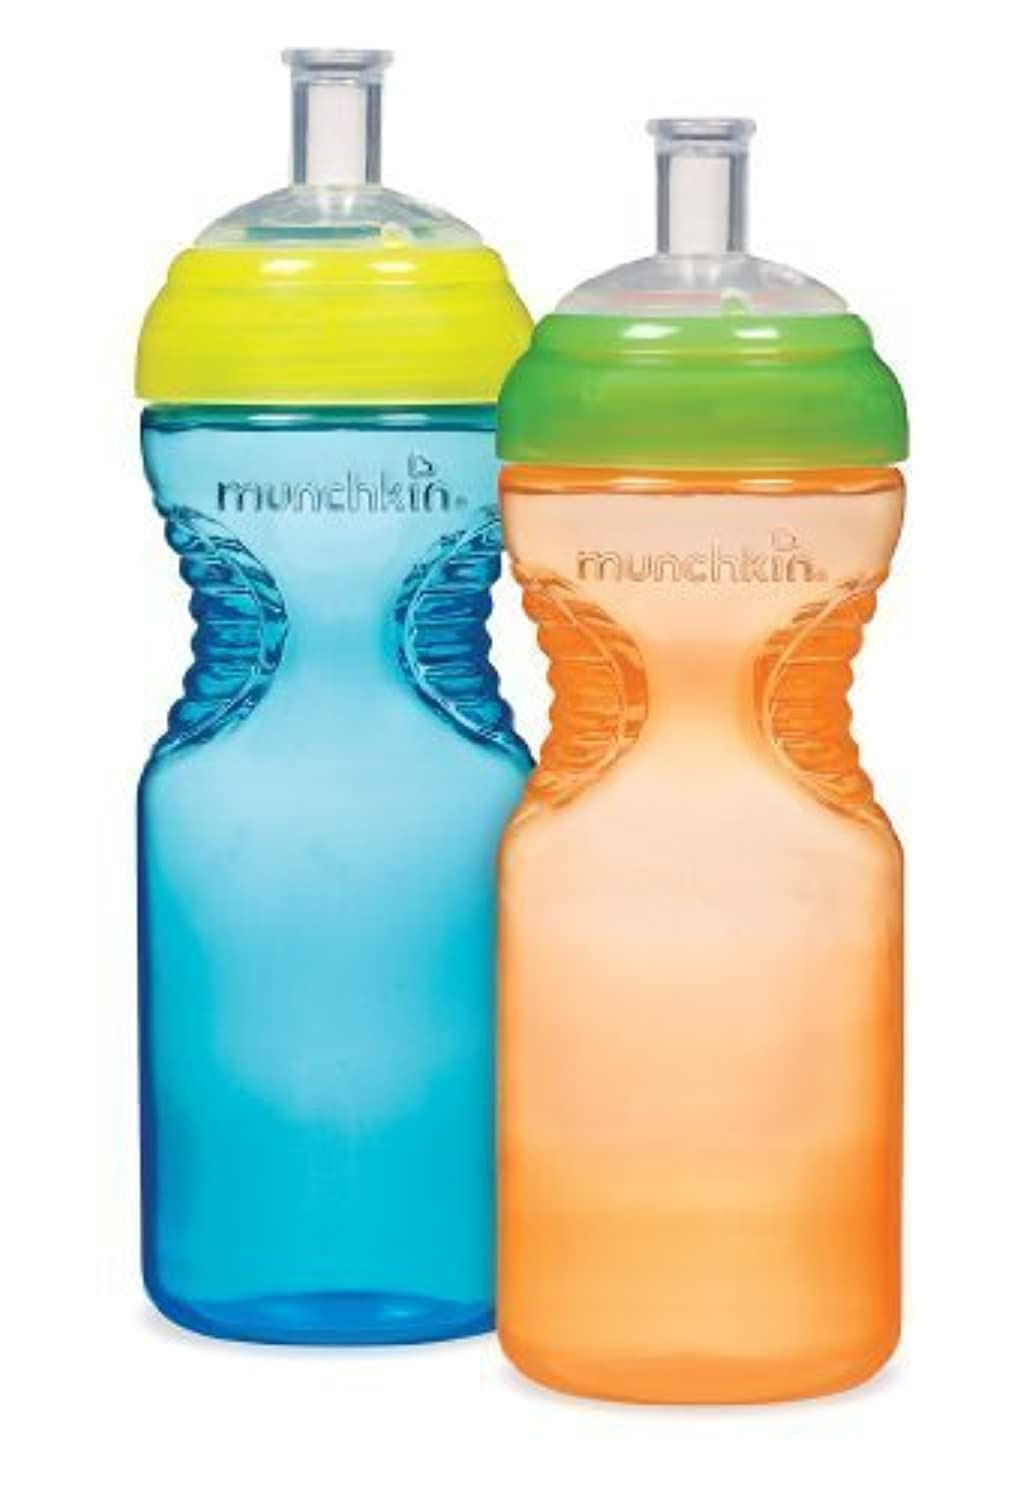 Munchkin BPA Free Mighty Grip Sports Bottle 2 Pack, 10 oz,Colors Vary (Discontinued by Manufacturer) by Munchkin [並行輸入品]